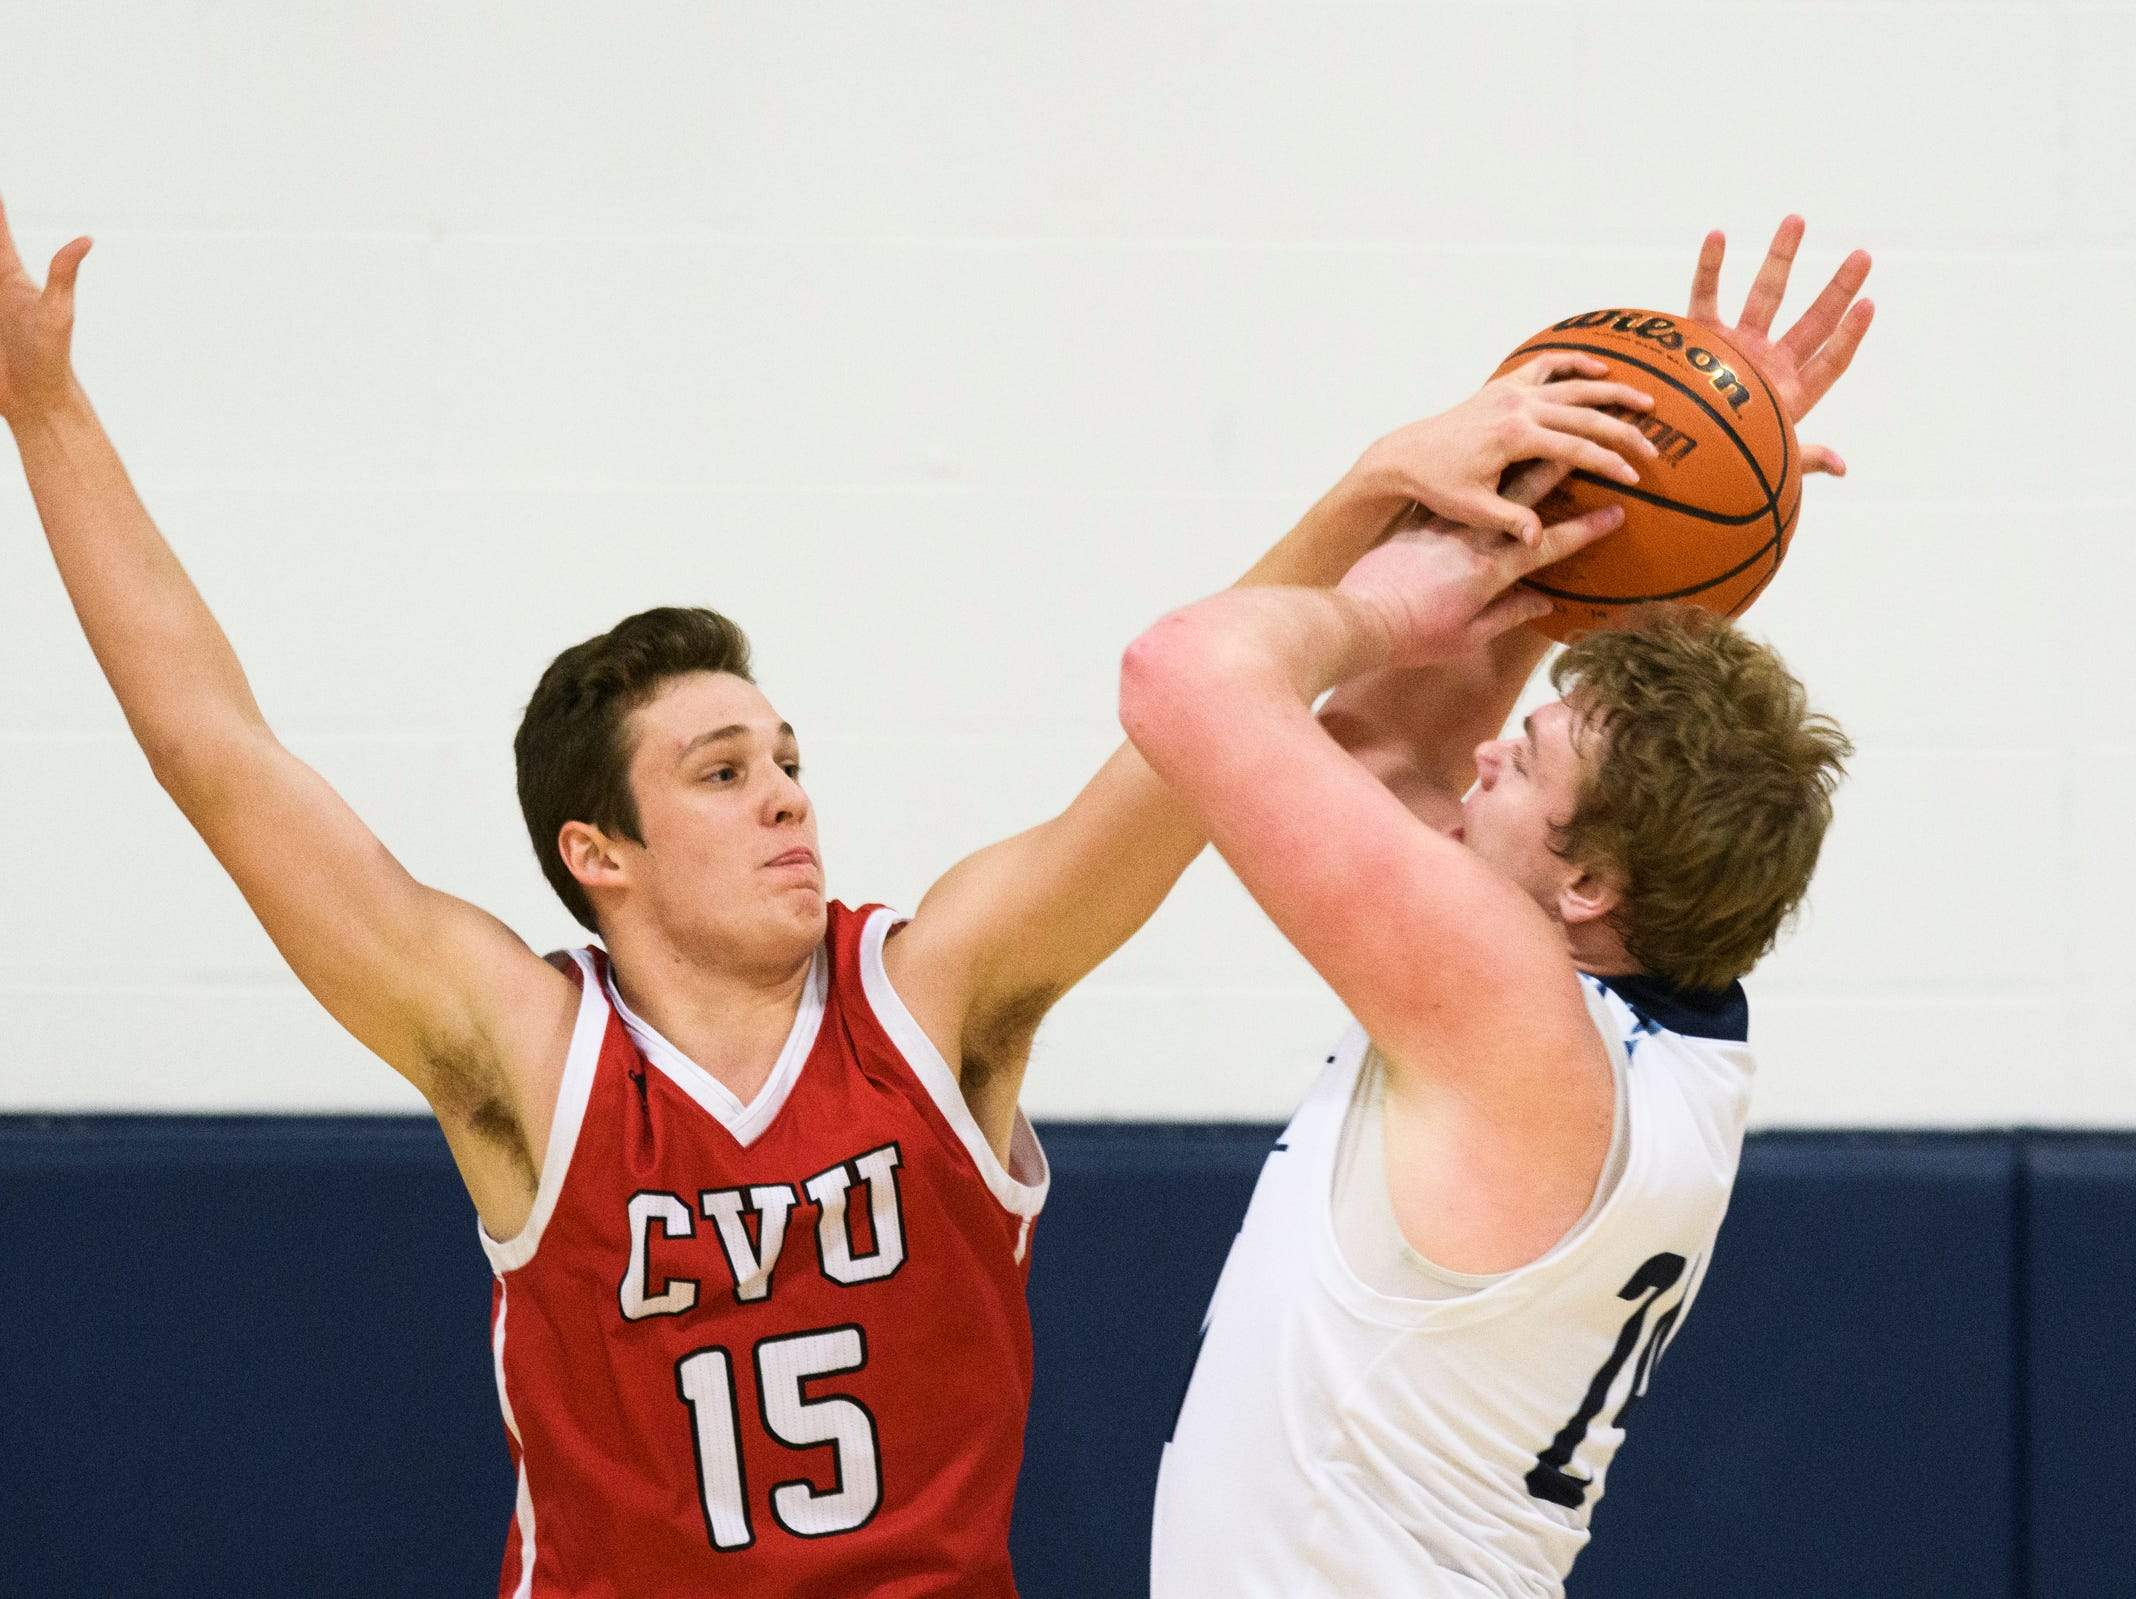 CVU's Bennett Cheer (15) blocks the shot by MMU's Mark Howland (12) during the boys basketball game between the Champlain Valley Union Redhawks and the Mount Mansfield Cougars at MMU High School on Tuesday night January 22, 2019 in Jericho.